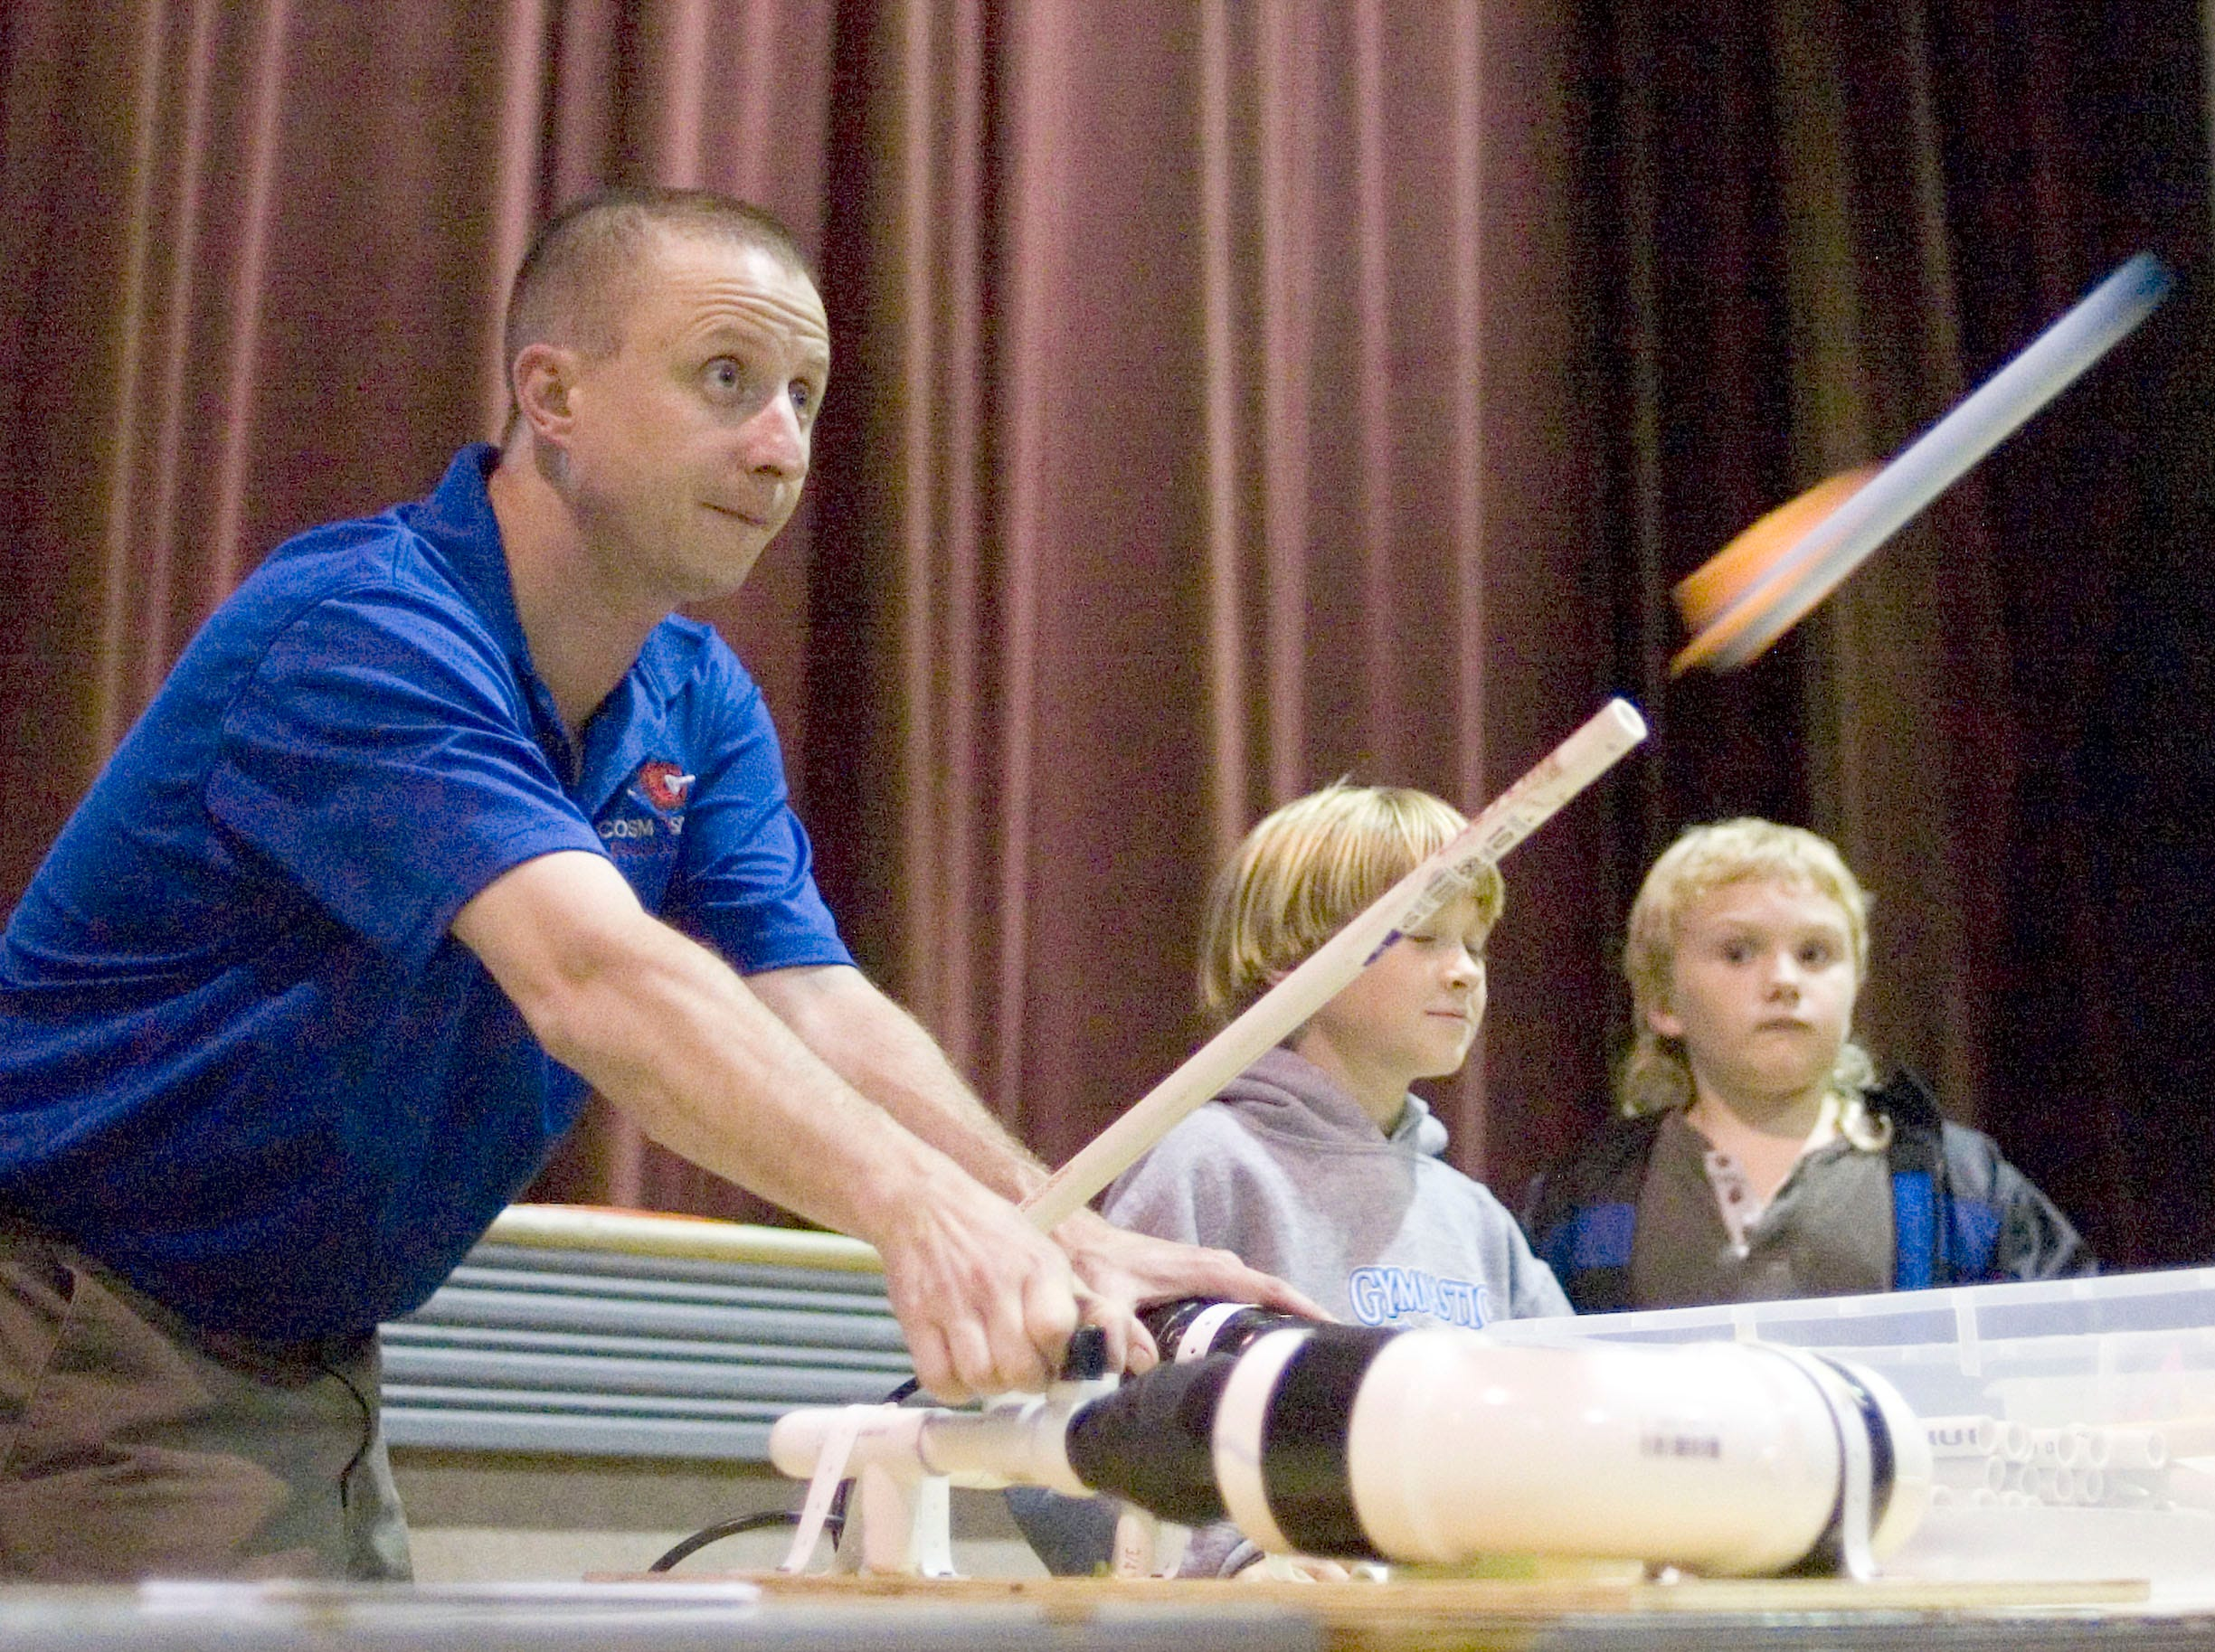 Spaceport Sheboygan's Daniel Bateman launches a rocket of Samson Hou-Seye, 8, right, of Sheboygan Tuesday, October 14, 2008, at Spaceport Sheboygan at the Sheboygan Armory in Sheboygan, Wis.